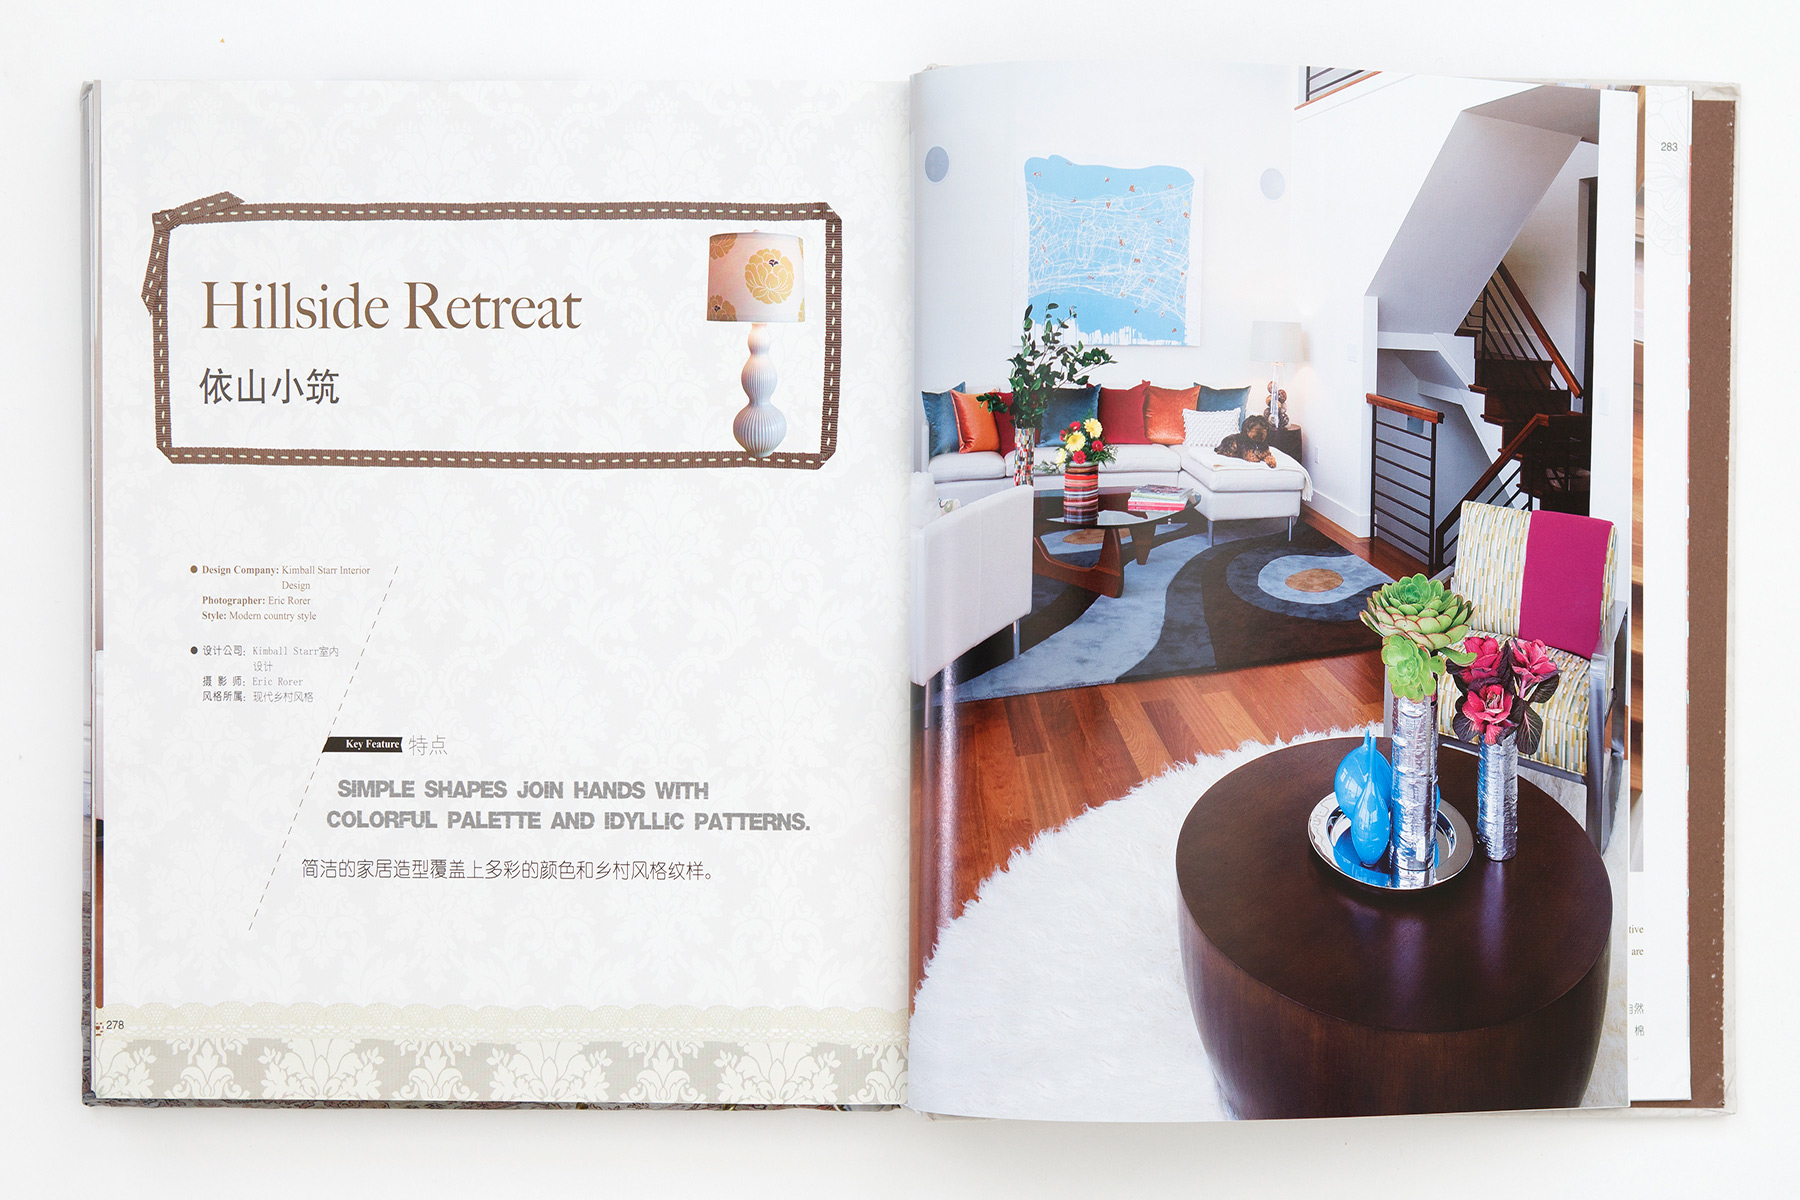 san francisco interior design firm kimball starr featured